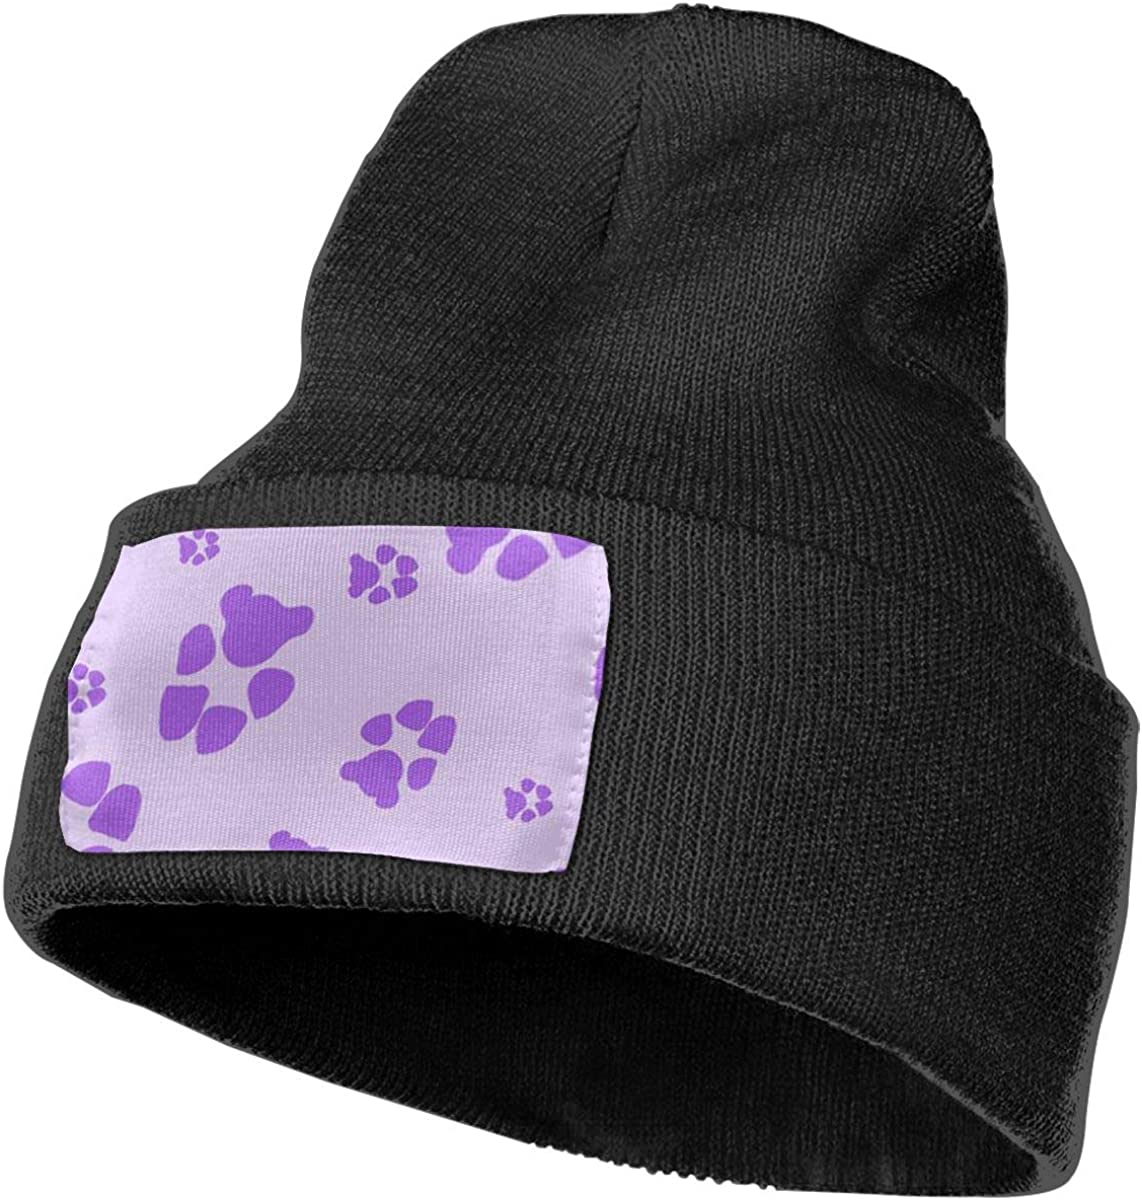 Stretchy Cuff Beanie Hat Black Skull Caps Reigning Cats and Dogs Winter Warm Knit Hats